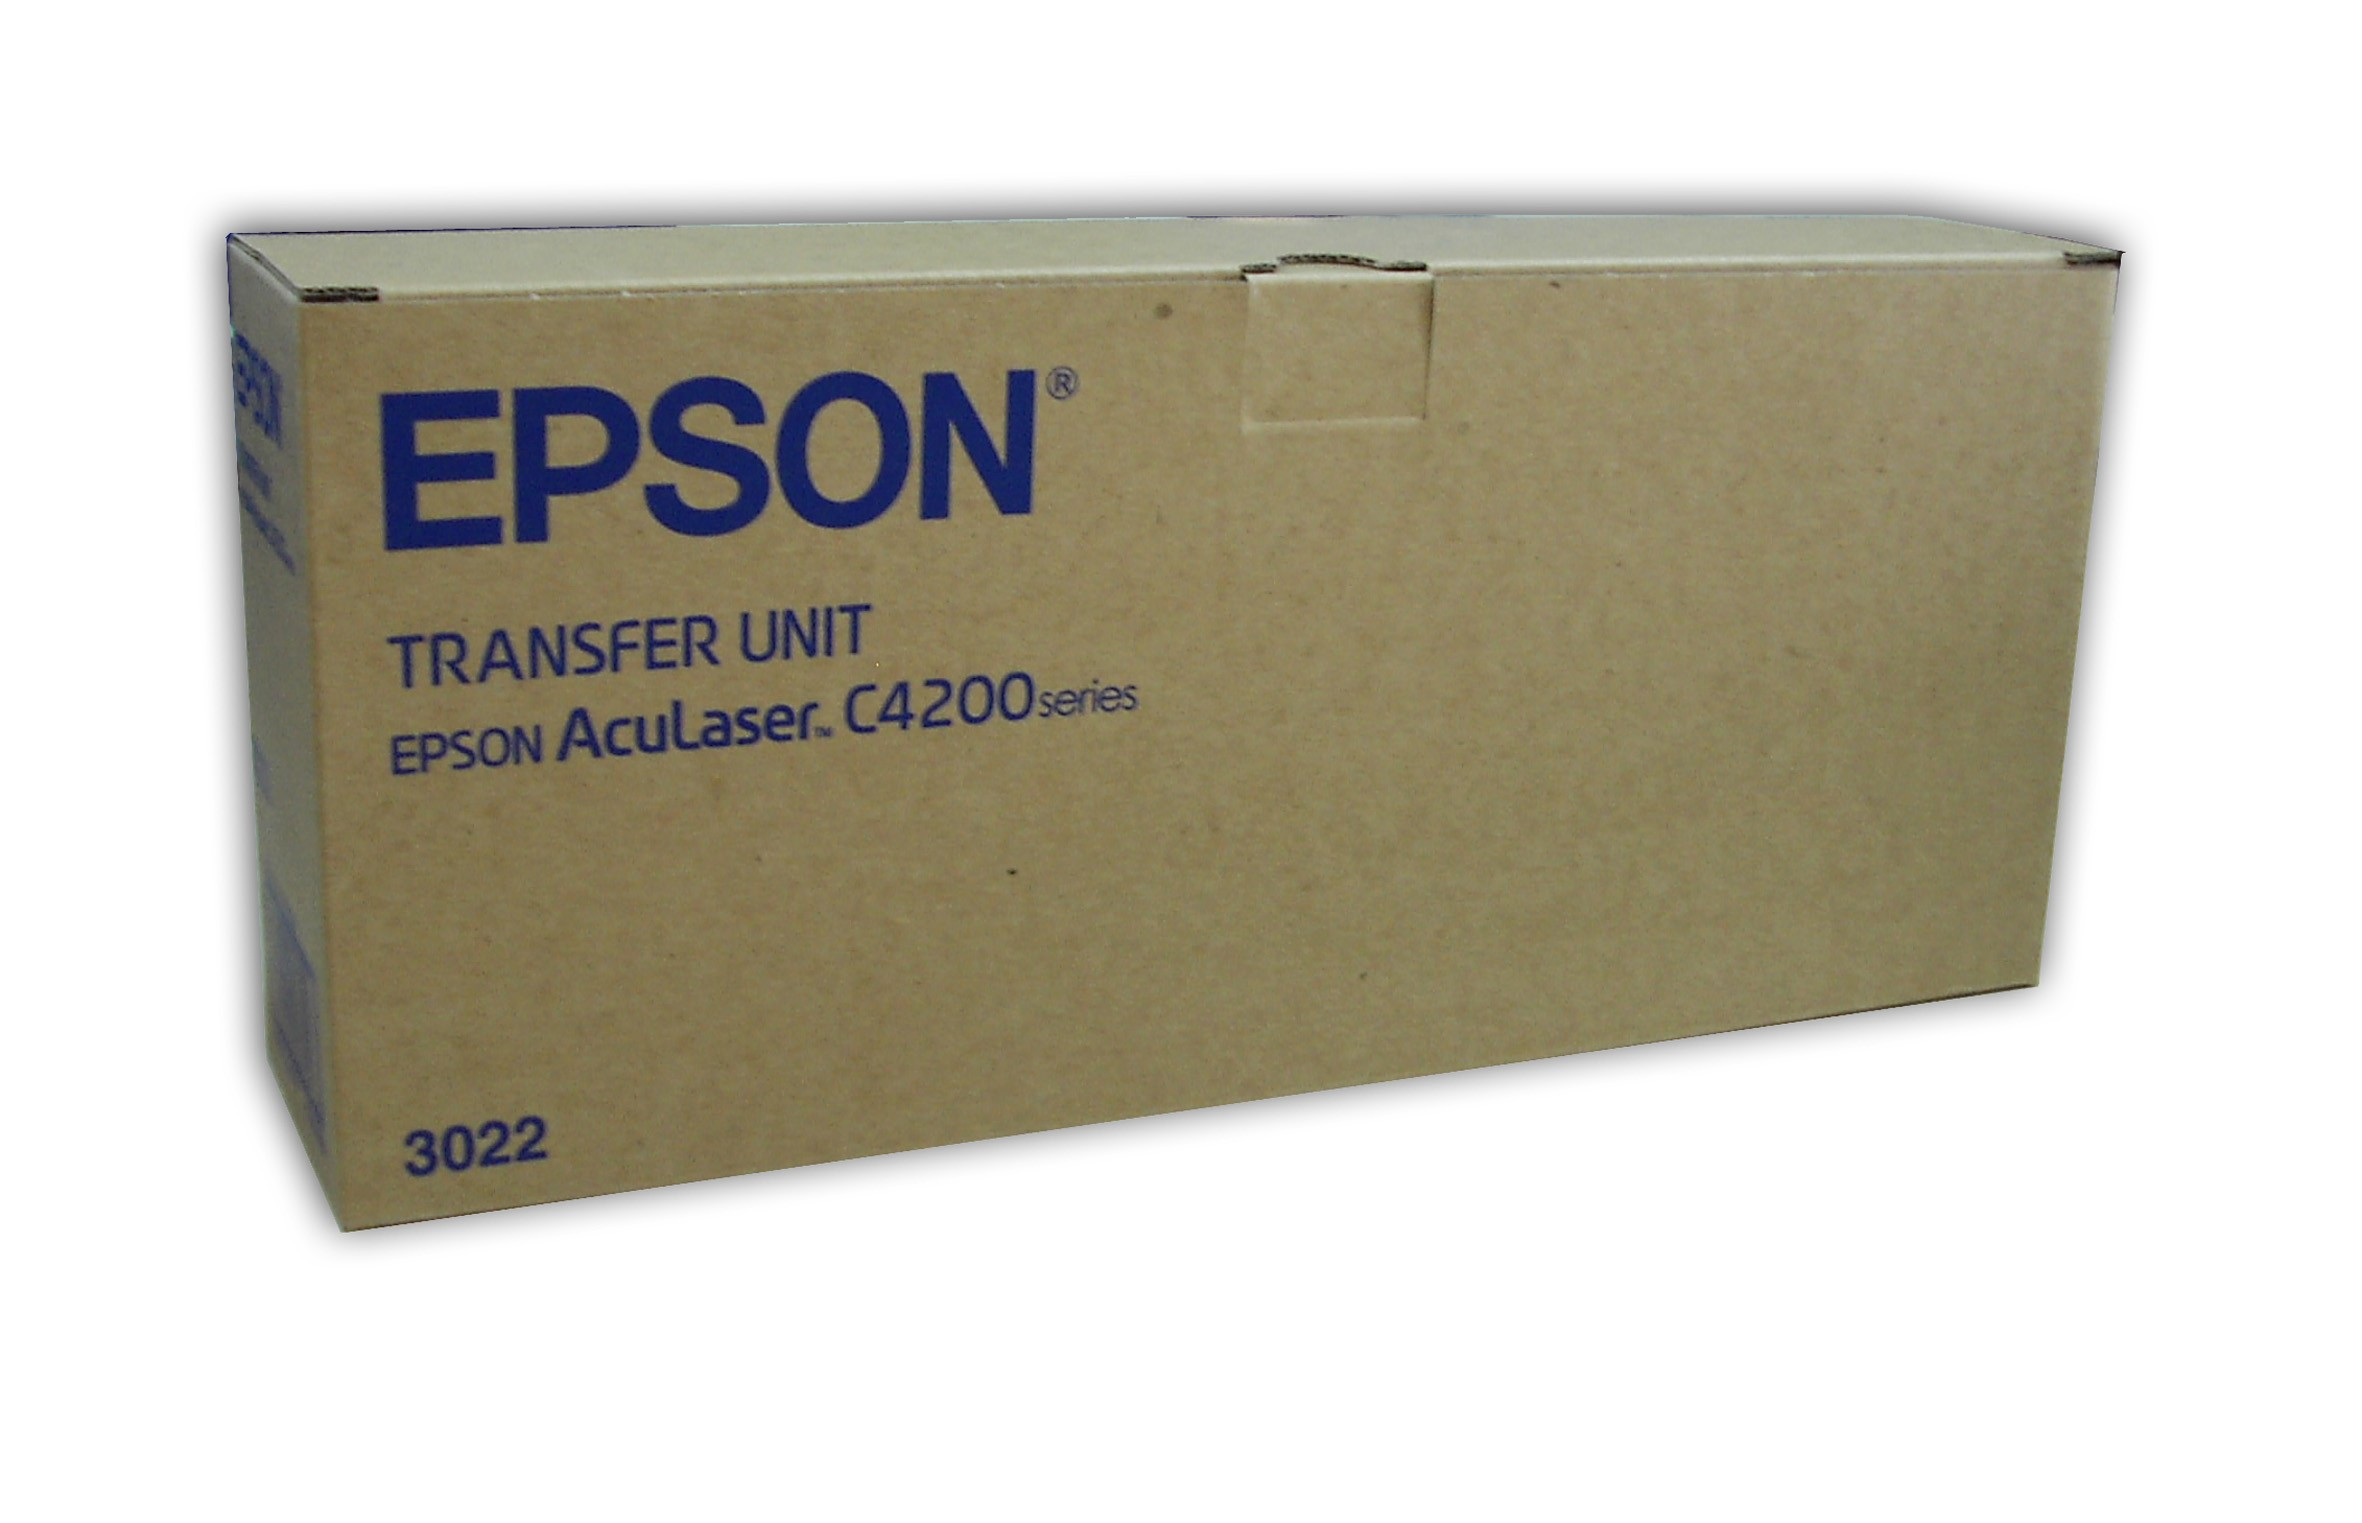 Epson C4200 Transfer Roller 35K Pages